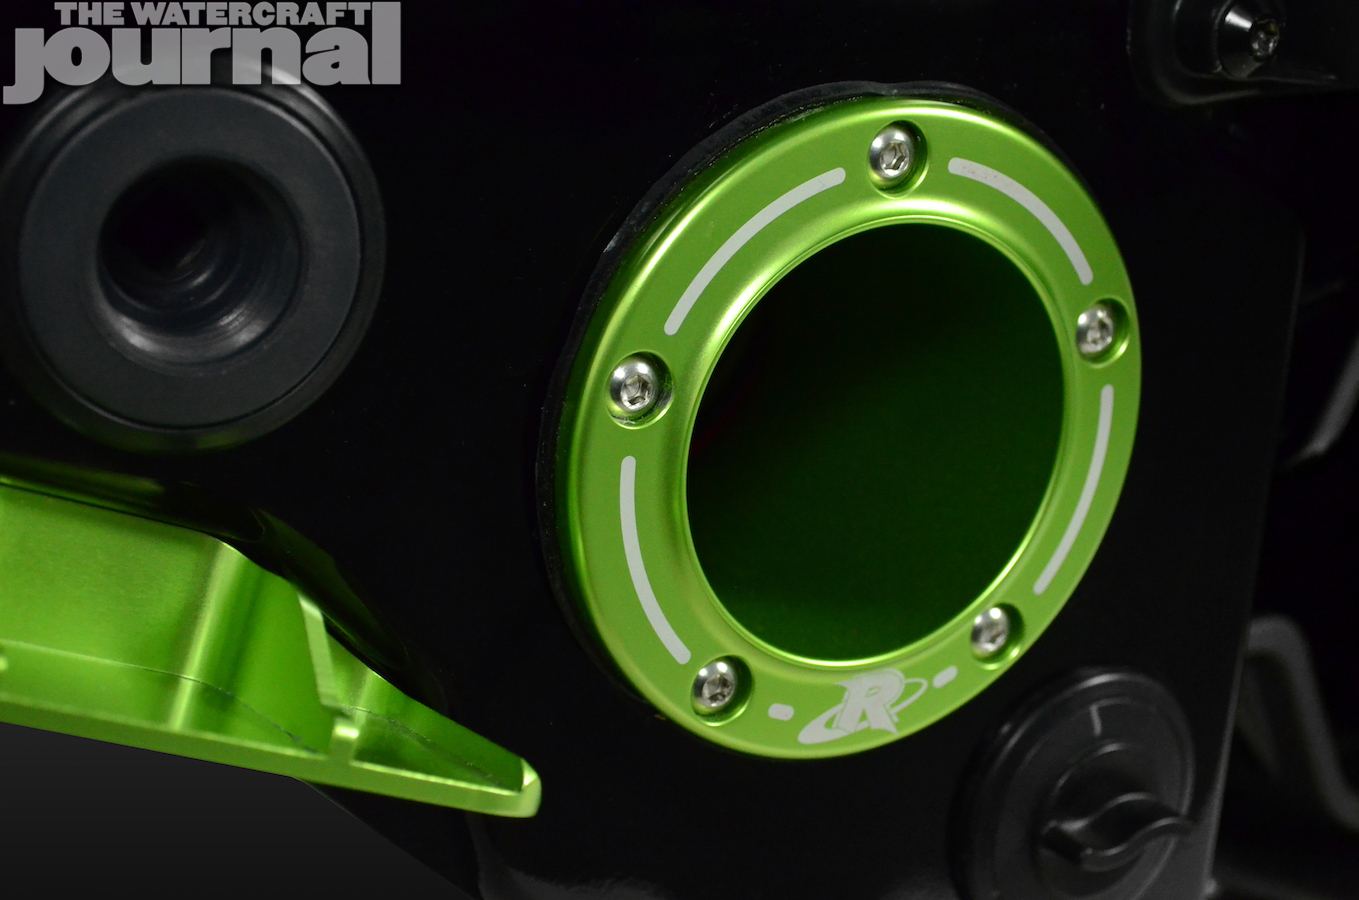 Green Seadoo RXP Exhaust tip